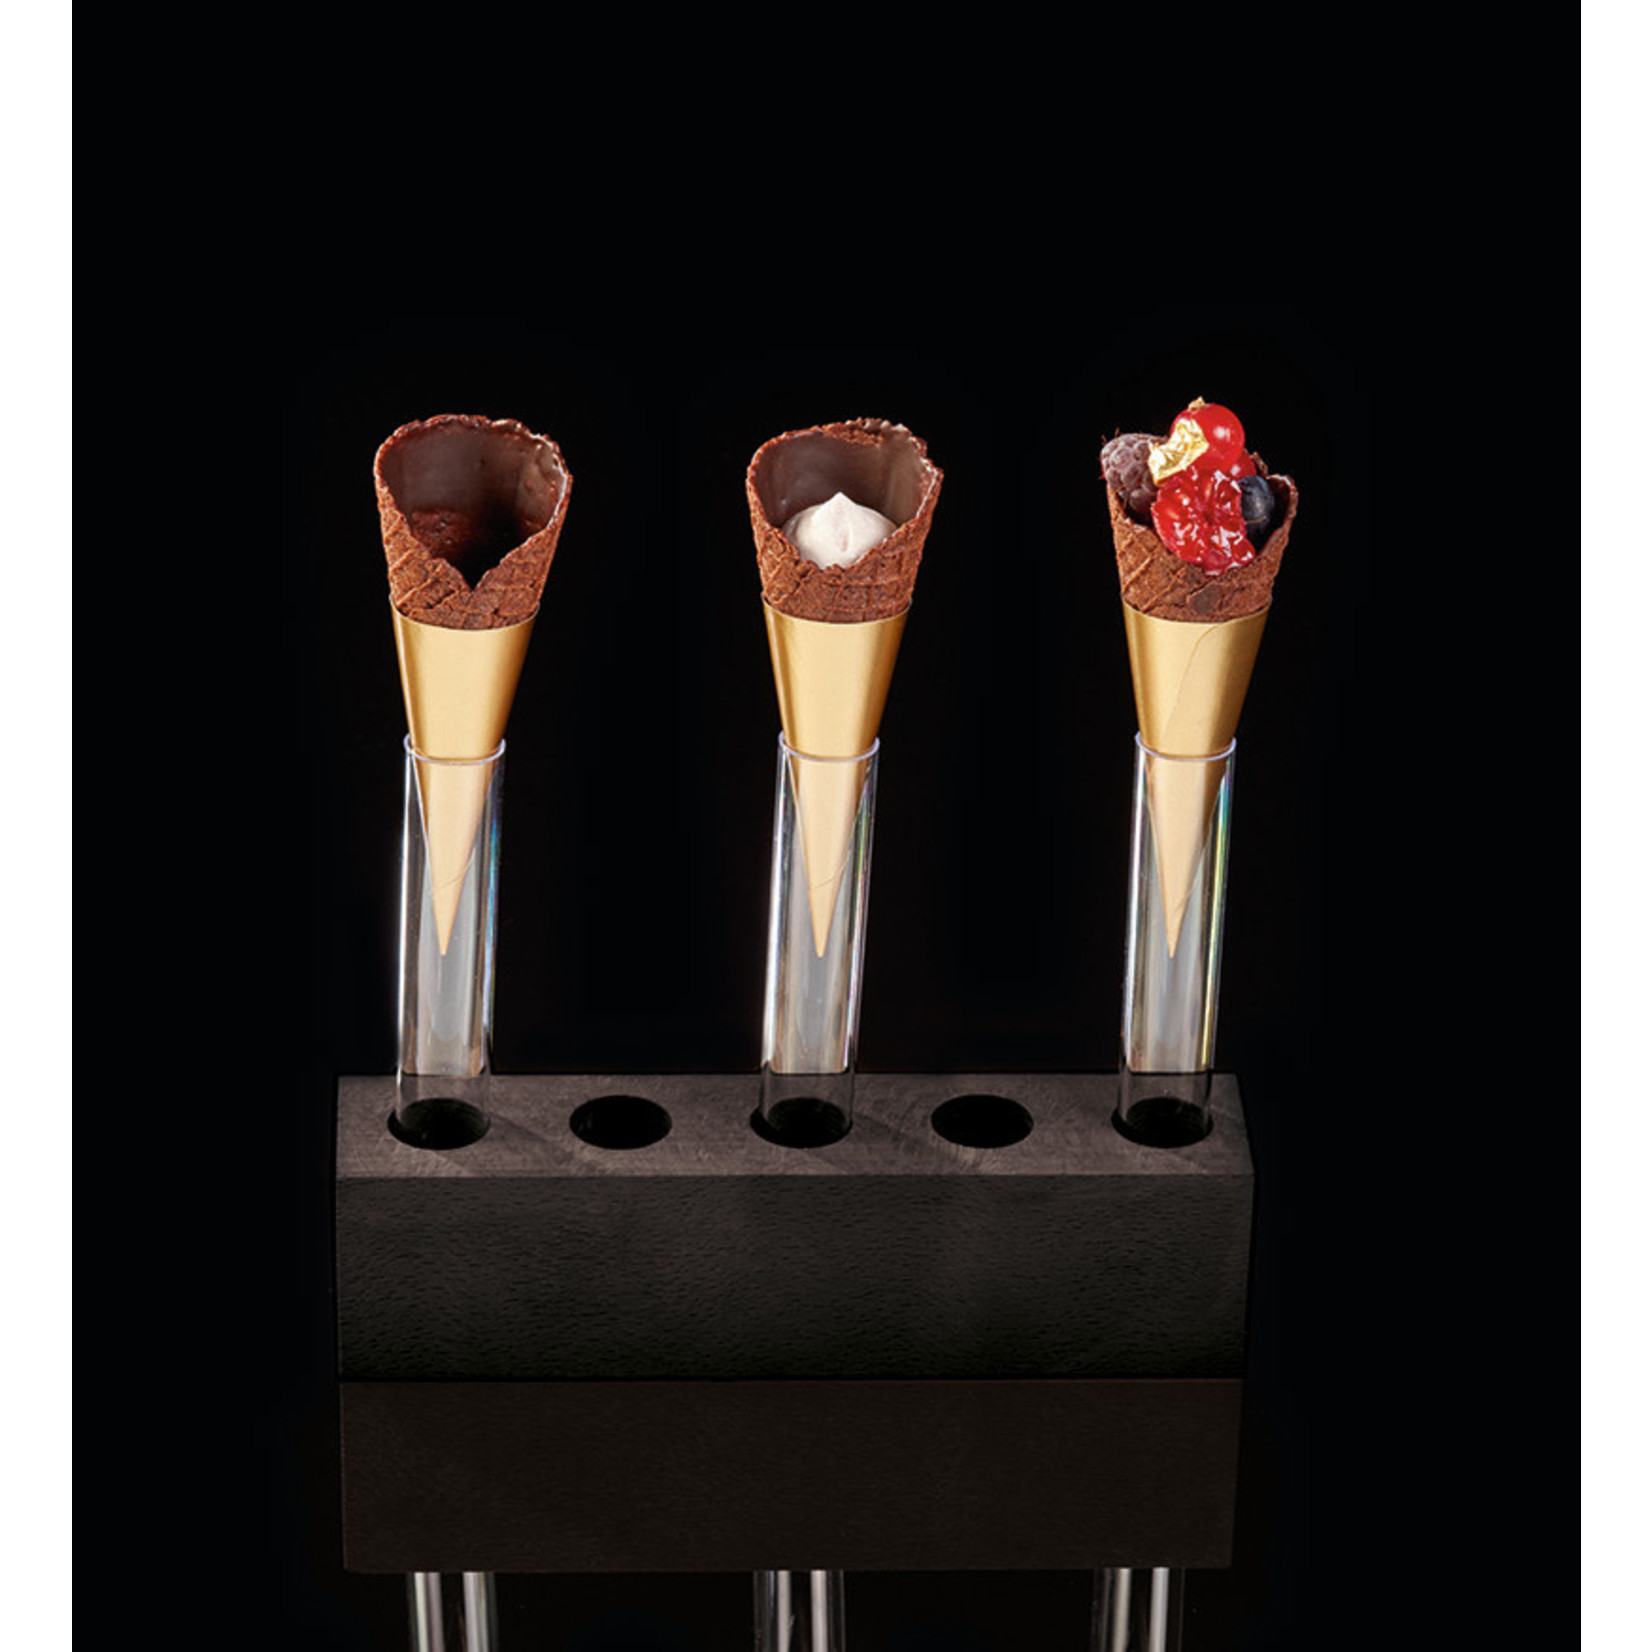 Delifrance Delifrance - Waffle Cone, Chocolate - 2.9x1.1'' (63ct), 78457